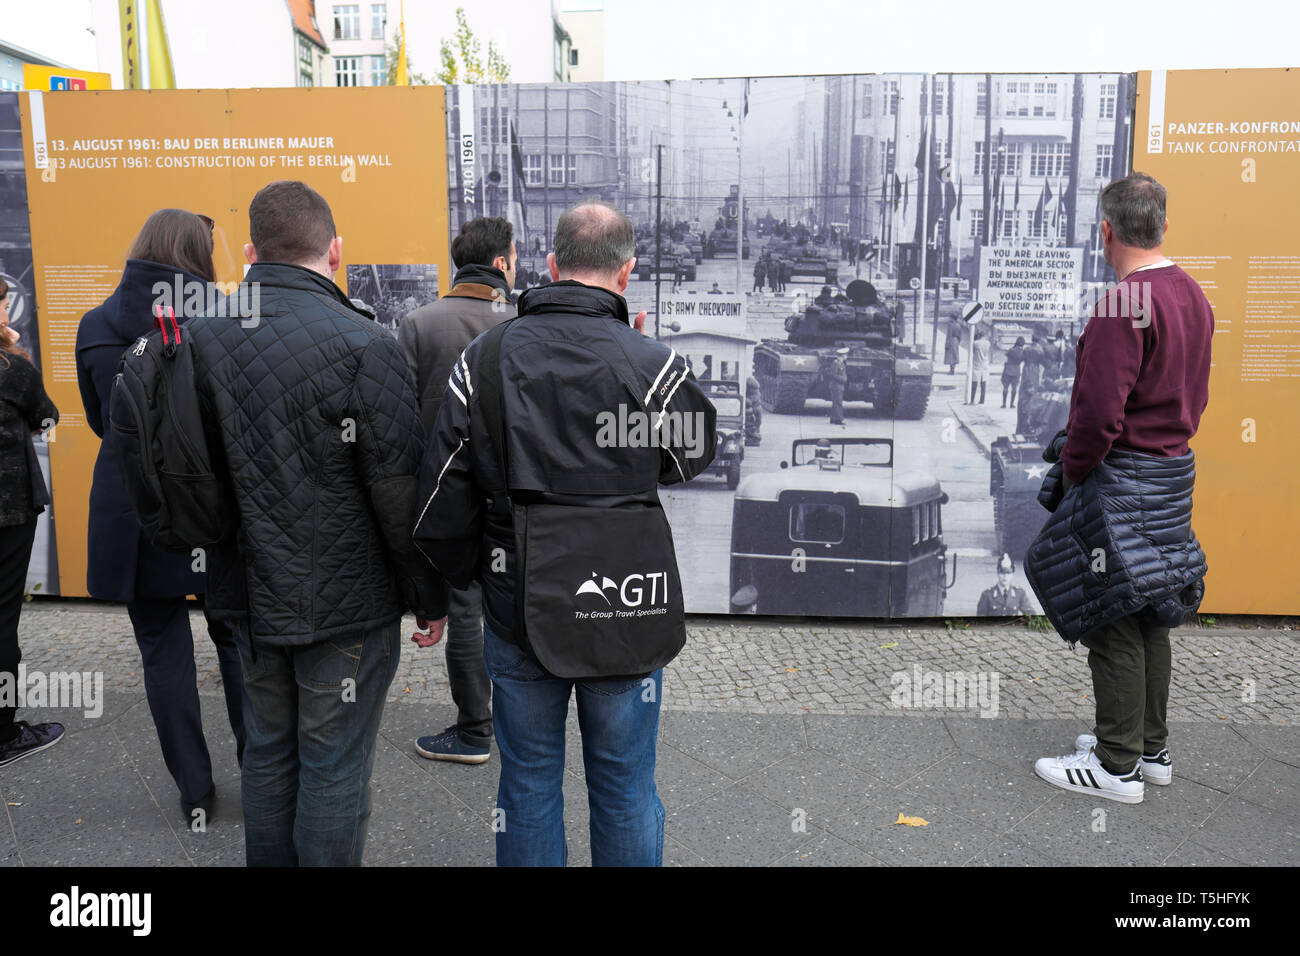 Berlin, Germany - tourists and visitors look at a Cold War era photo of the Checkpoint Charlie border crossing at the same location today Stock Photo